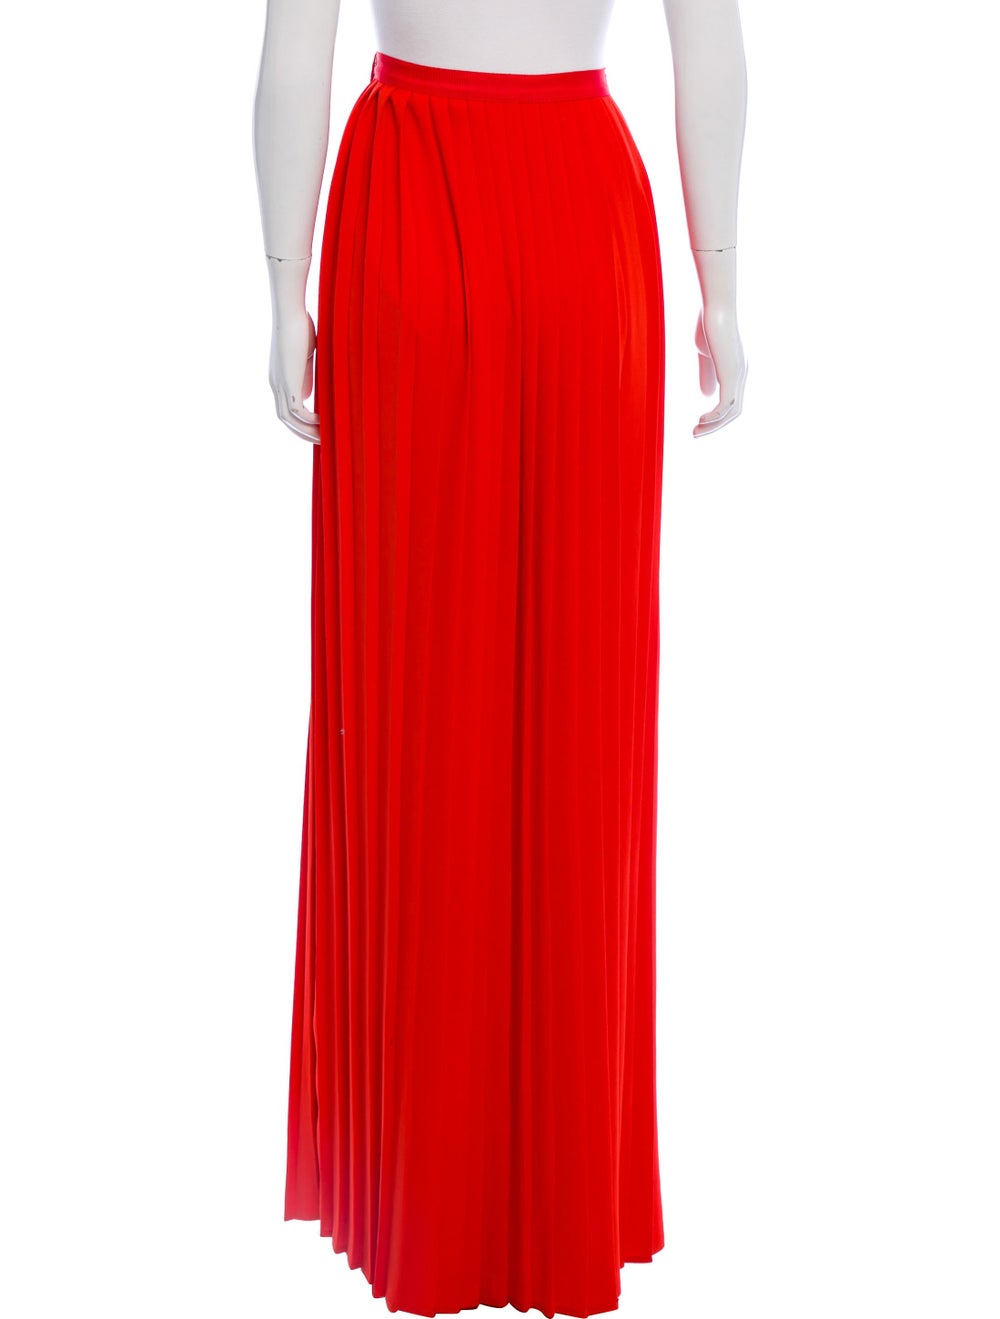 Oscar de la Renta Pleated Maxi Skirt Red - image 3